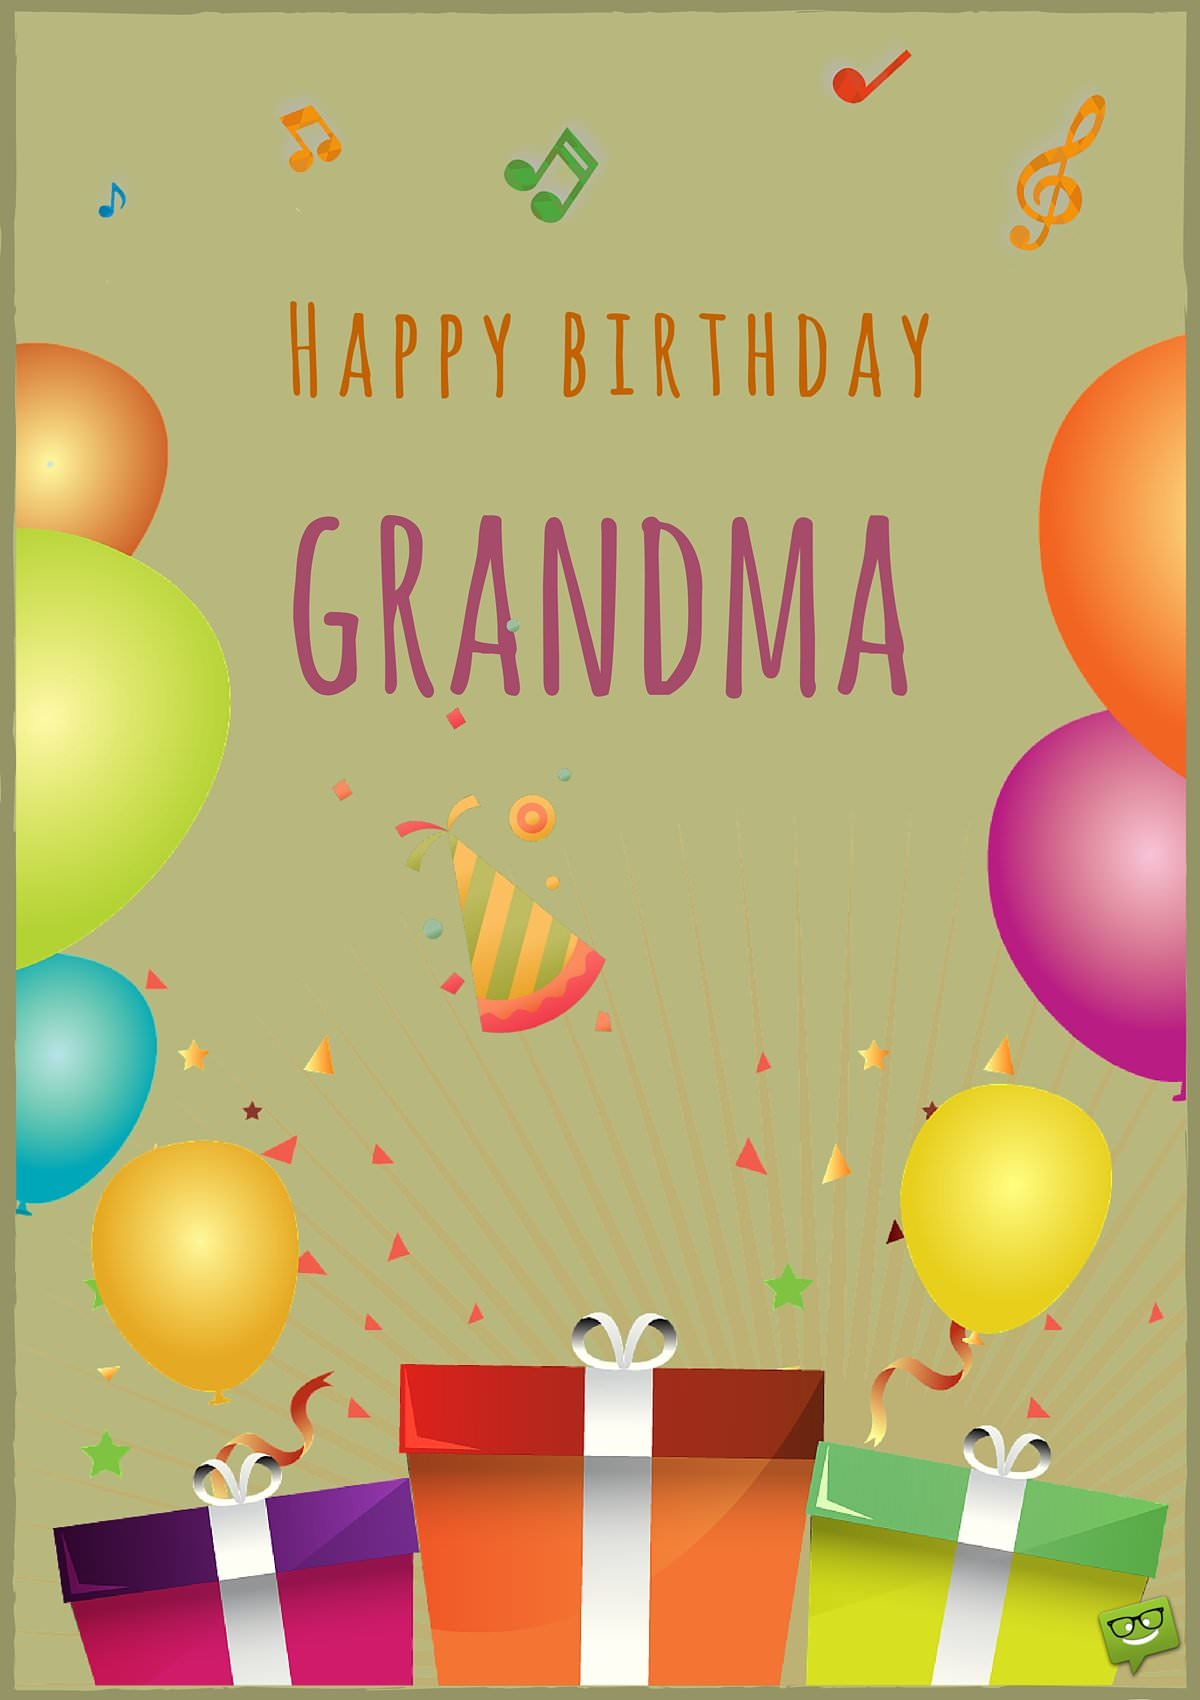 Happy Birthday Grandma Warm Wishes For Your Grandmother